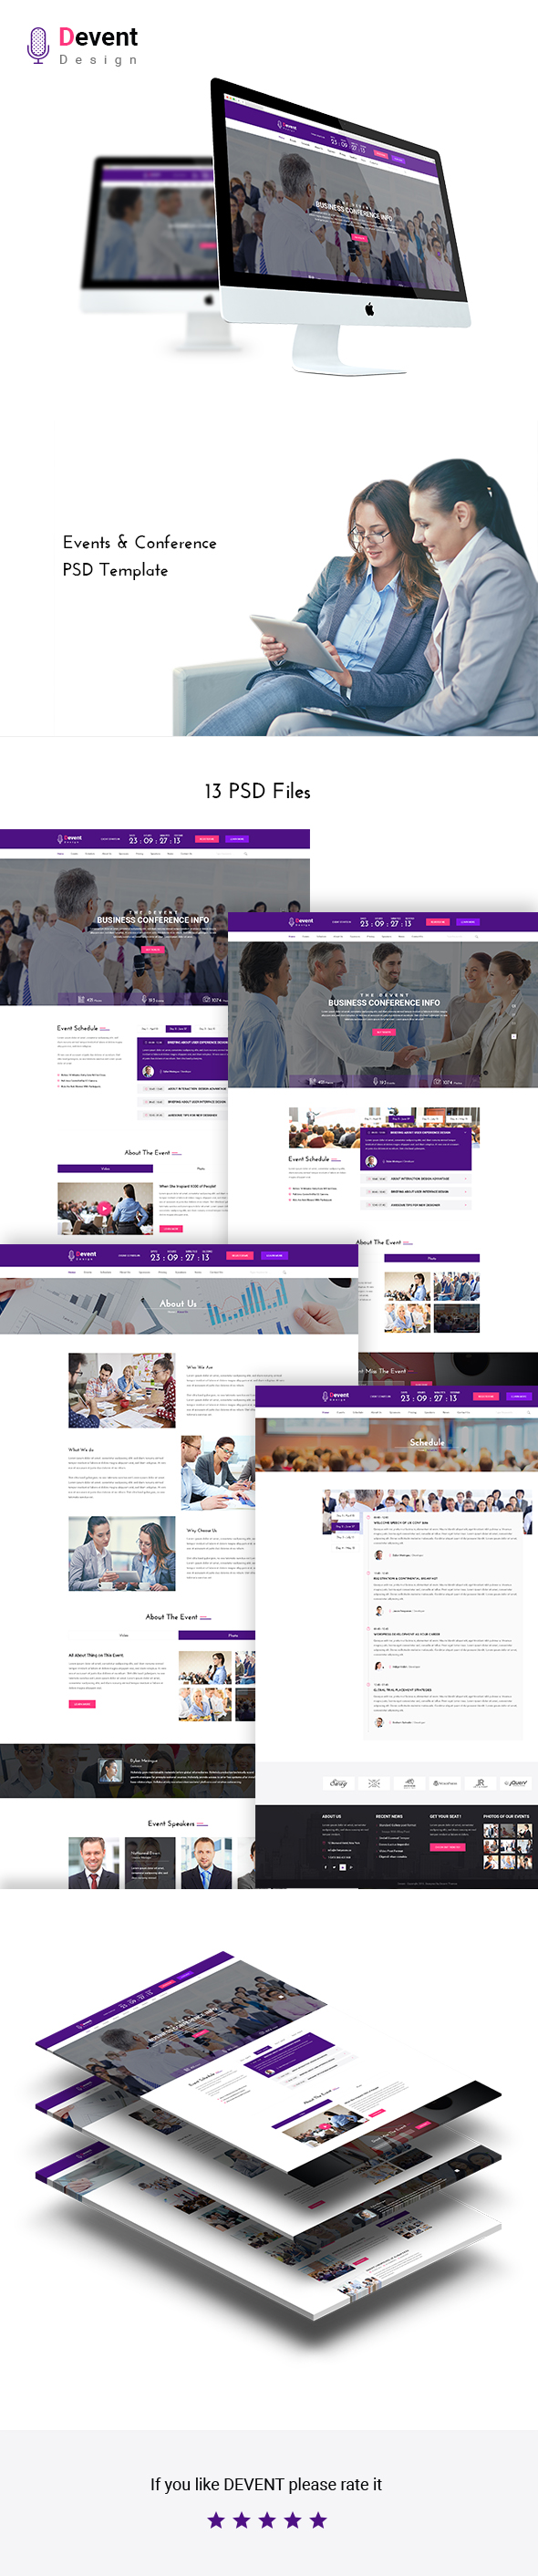 Devent - Events & Conference PSD Template